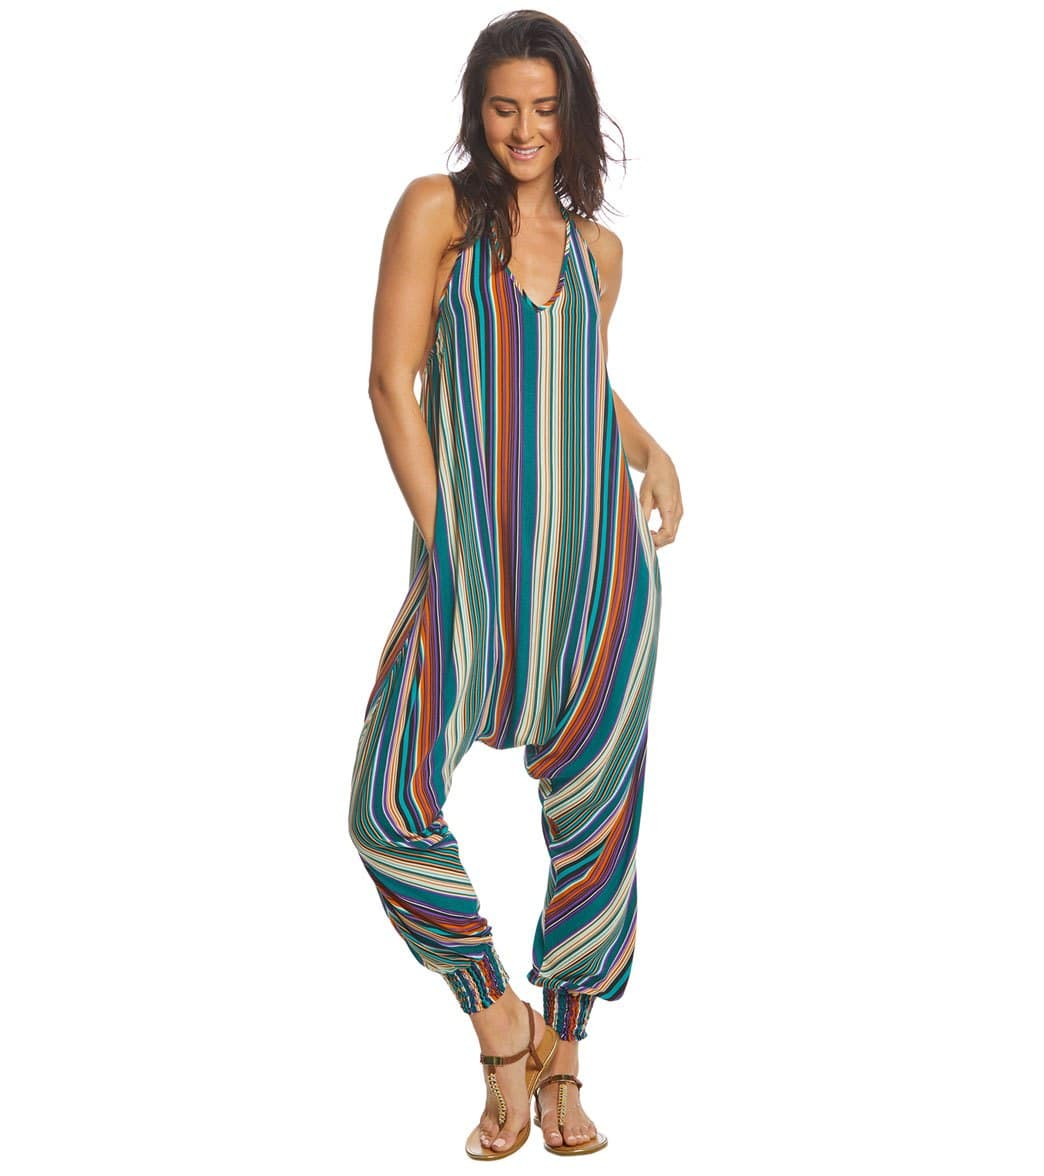 19d6f3247eb Buddha Pants Stripes Harem Jumpsuit at YogaOutlet.com - Free Shipping